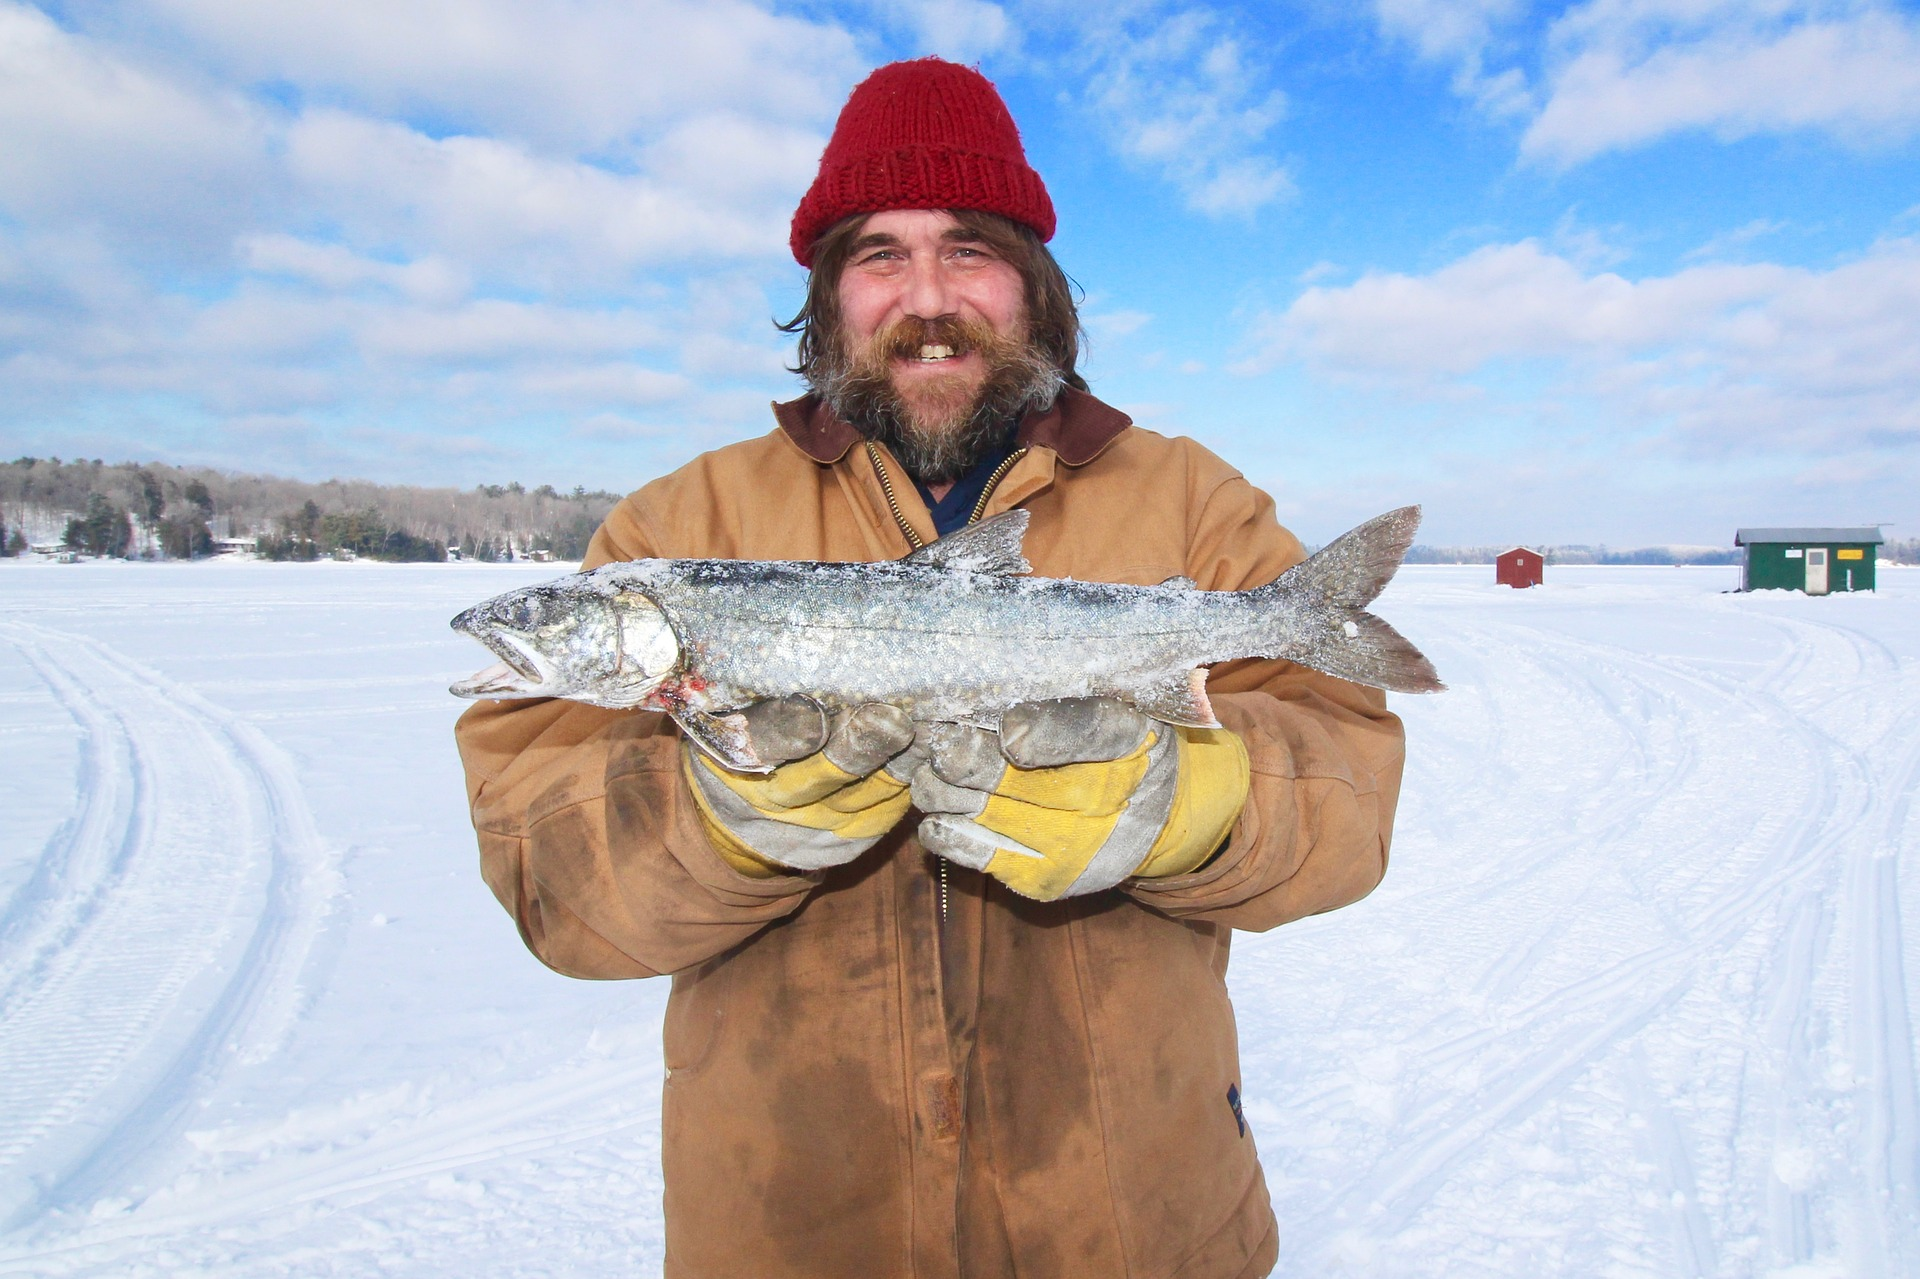 Lake Harriet has many different kinds of fish for you to catch on your next ice fishing trip.